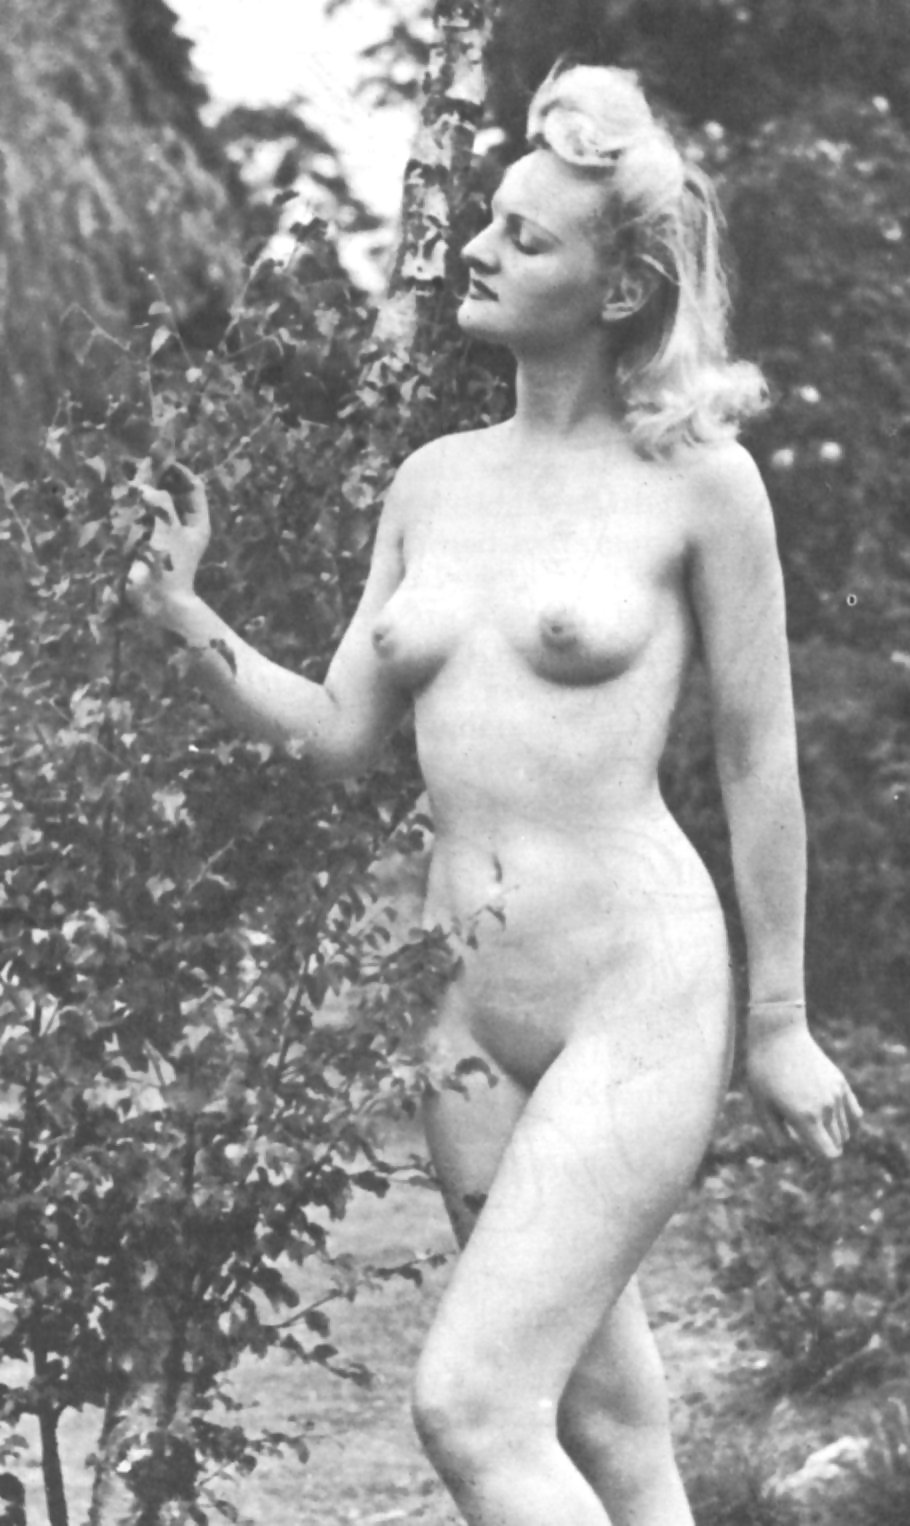 Useful question Index nudist picture think